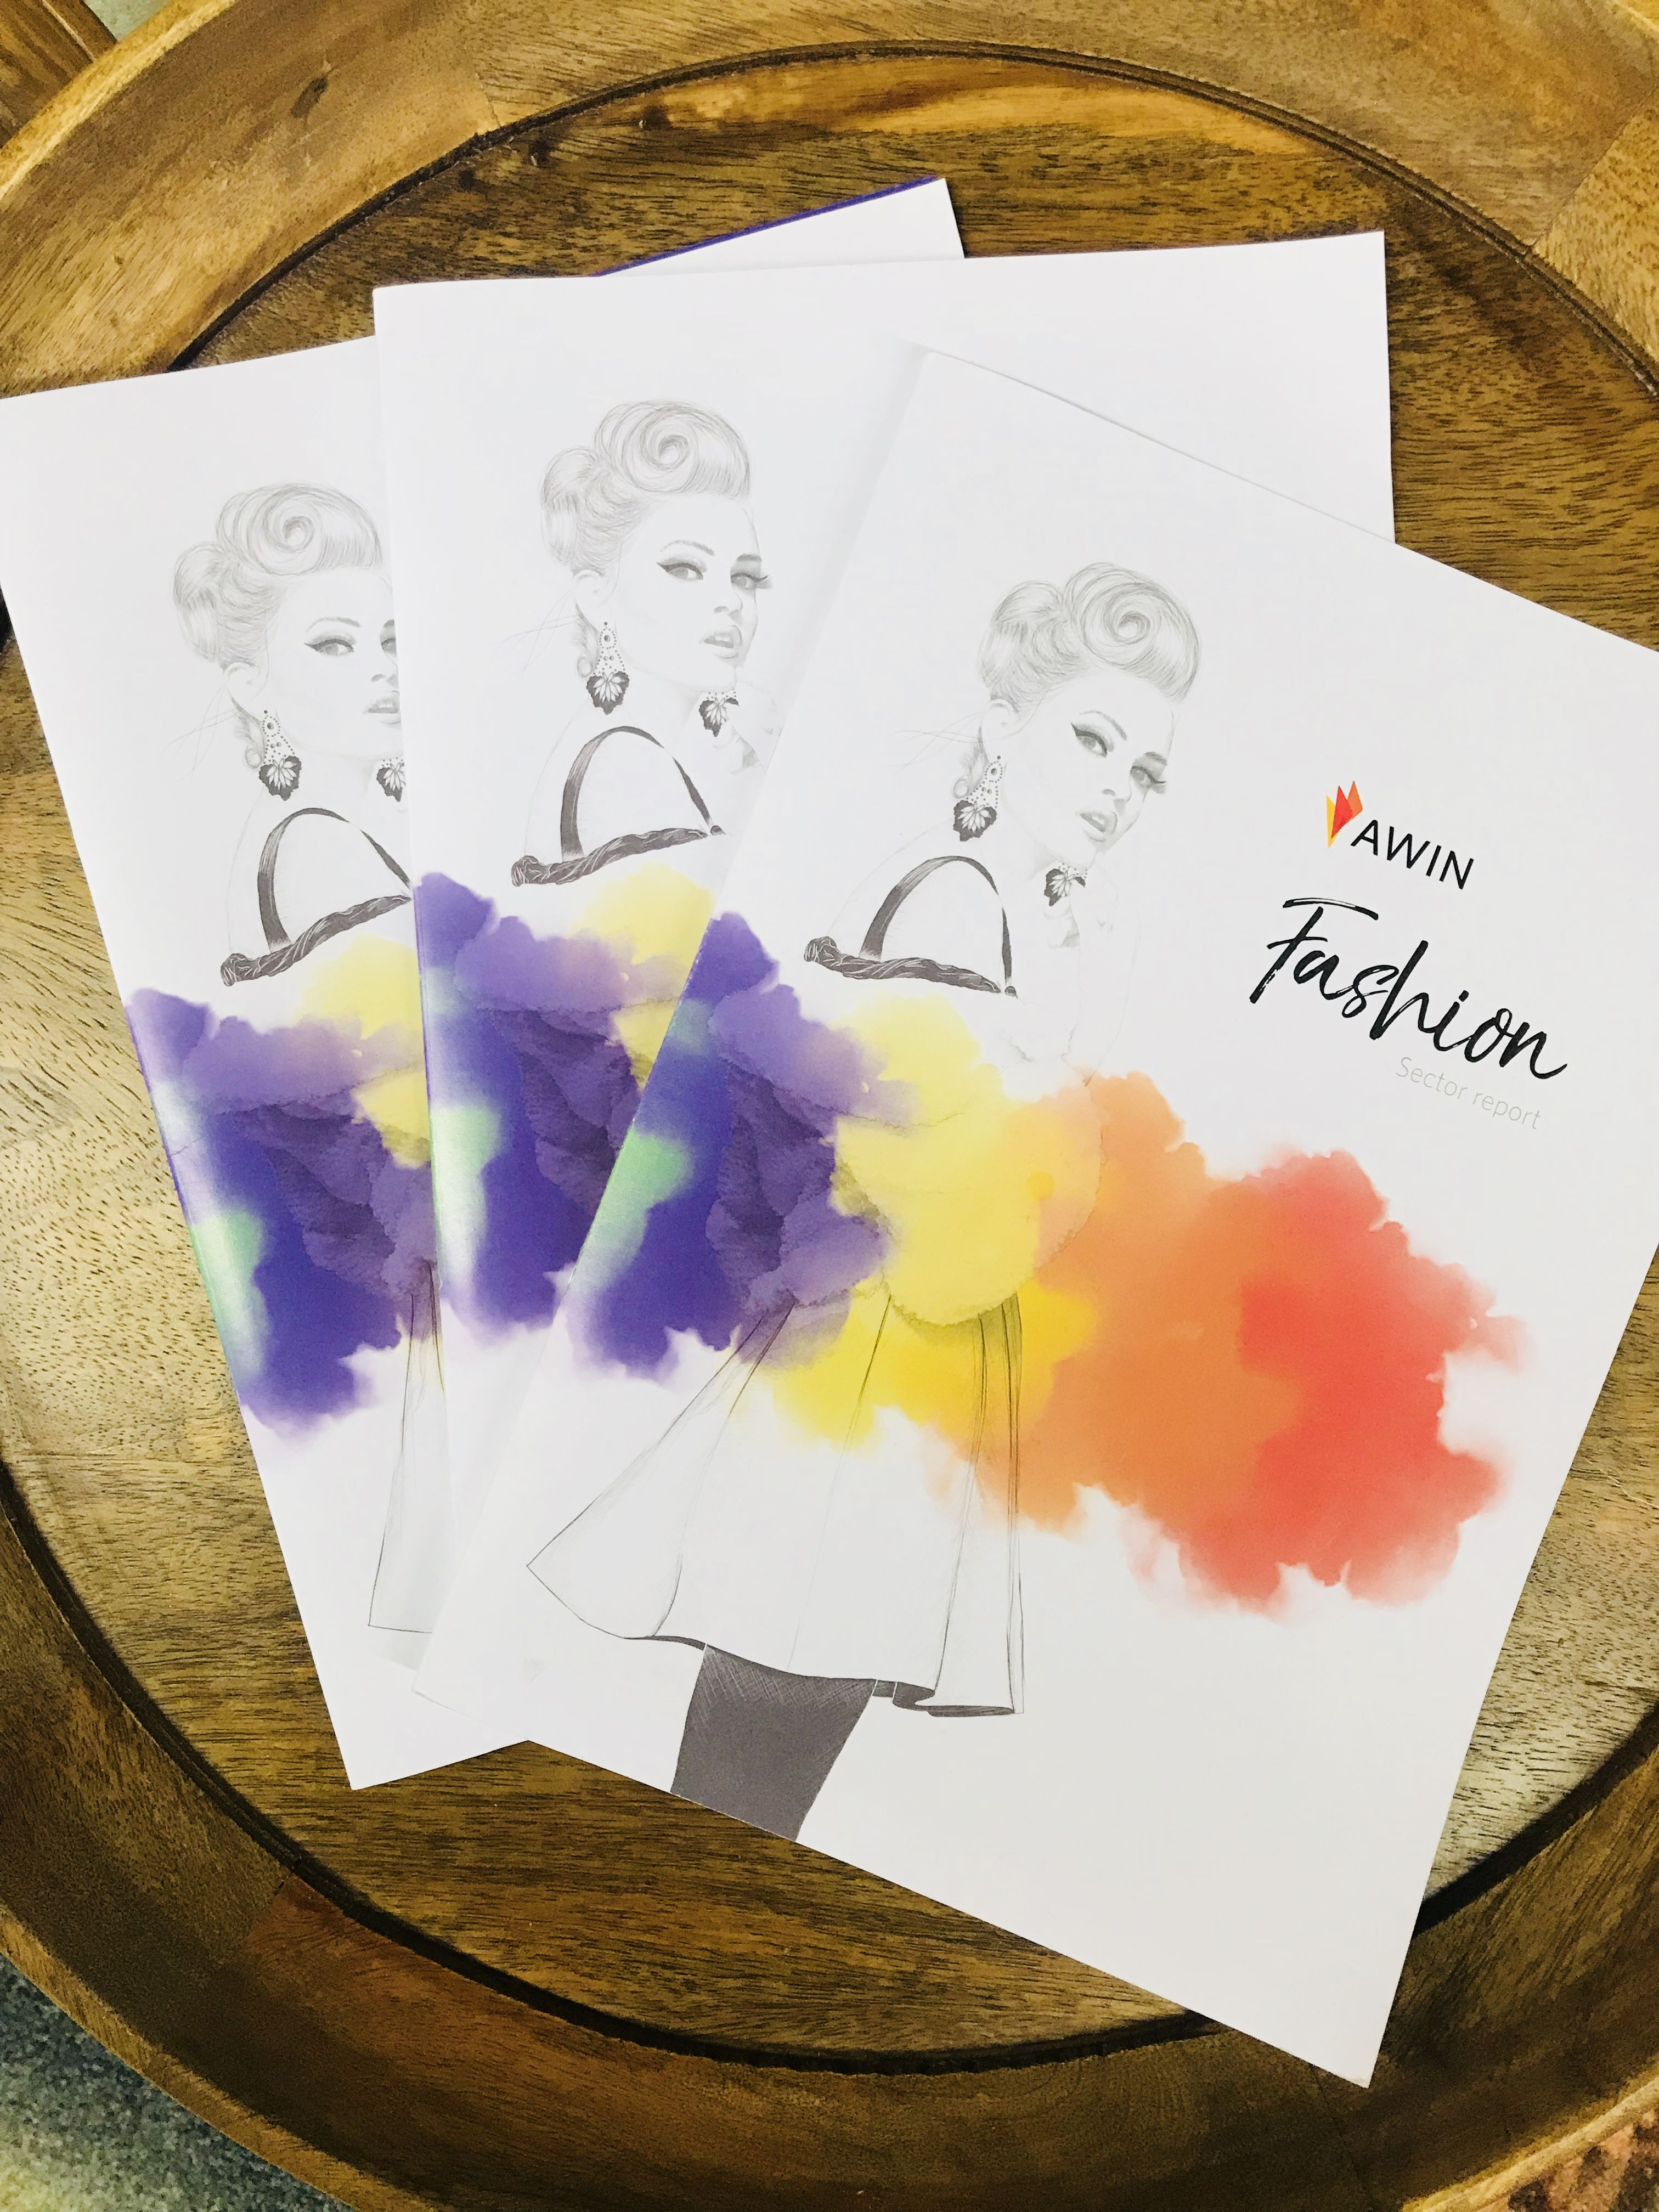 Awin Fashion sector report 2018